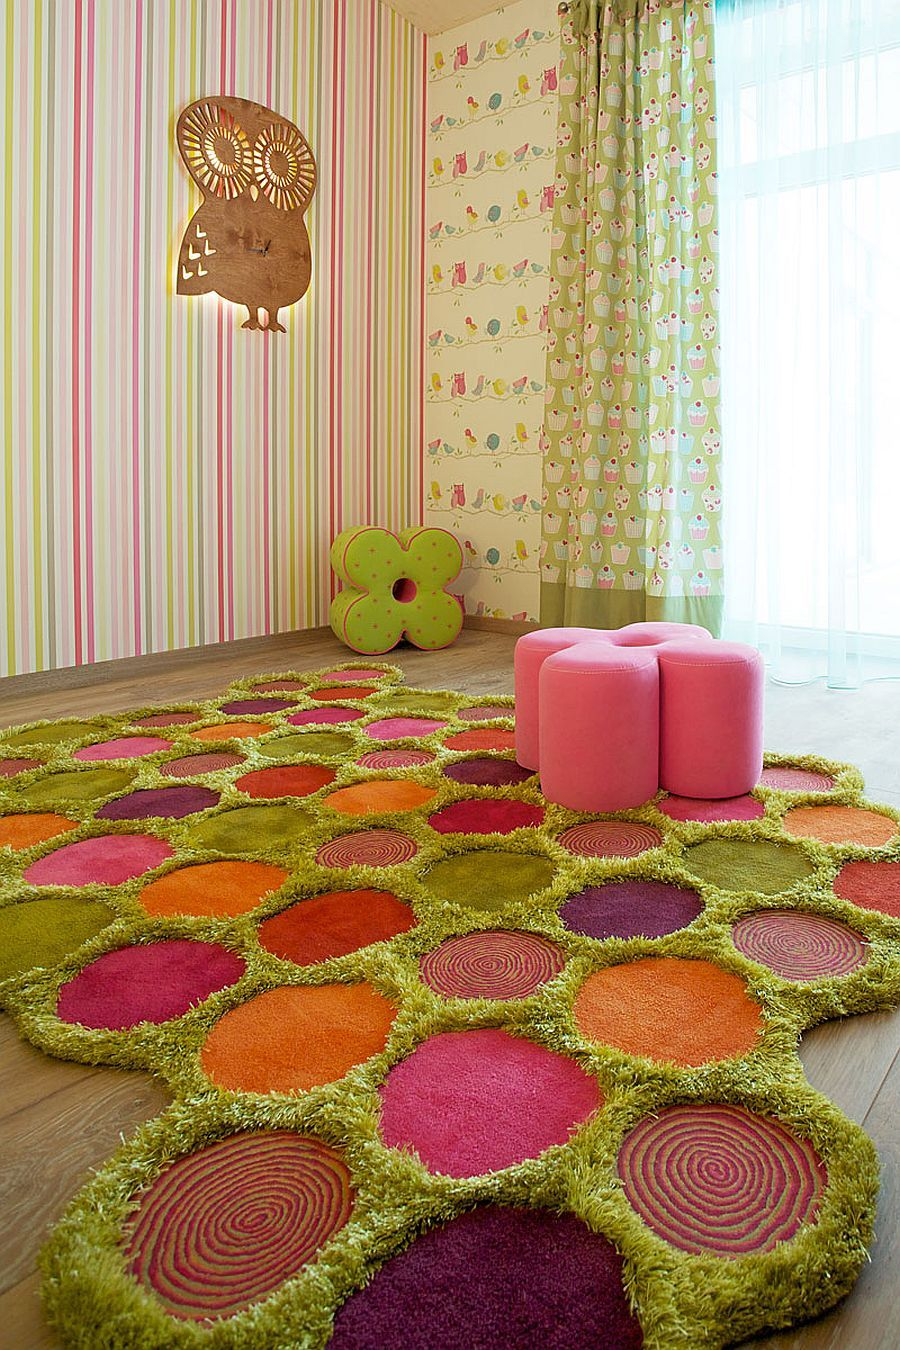 Colorful Zest 25 Eye Catching Rug Ideas For Kids Rooms Kids